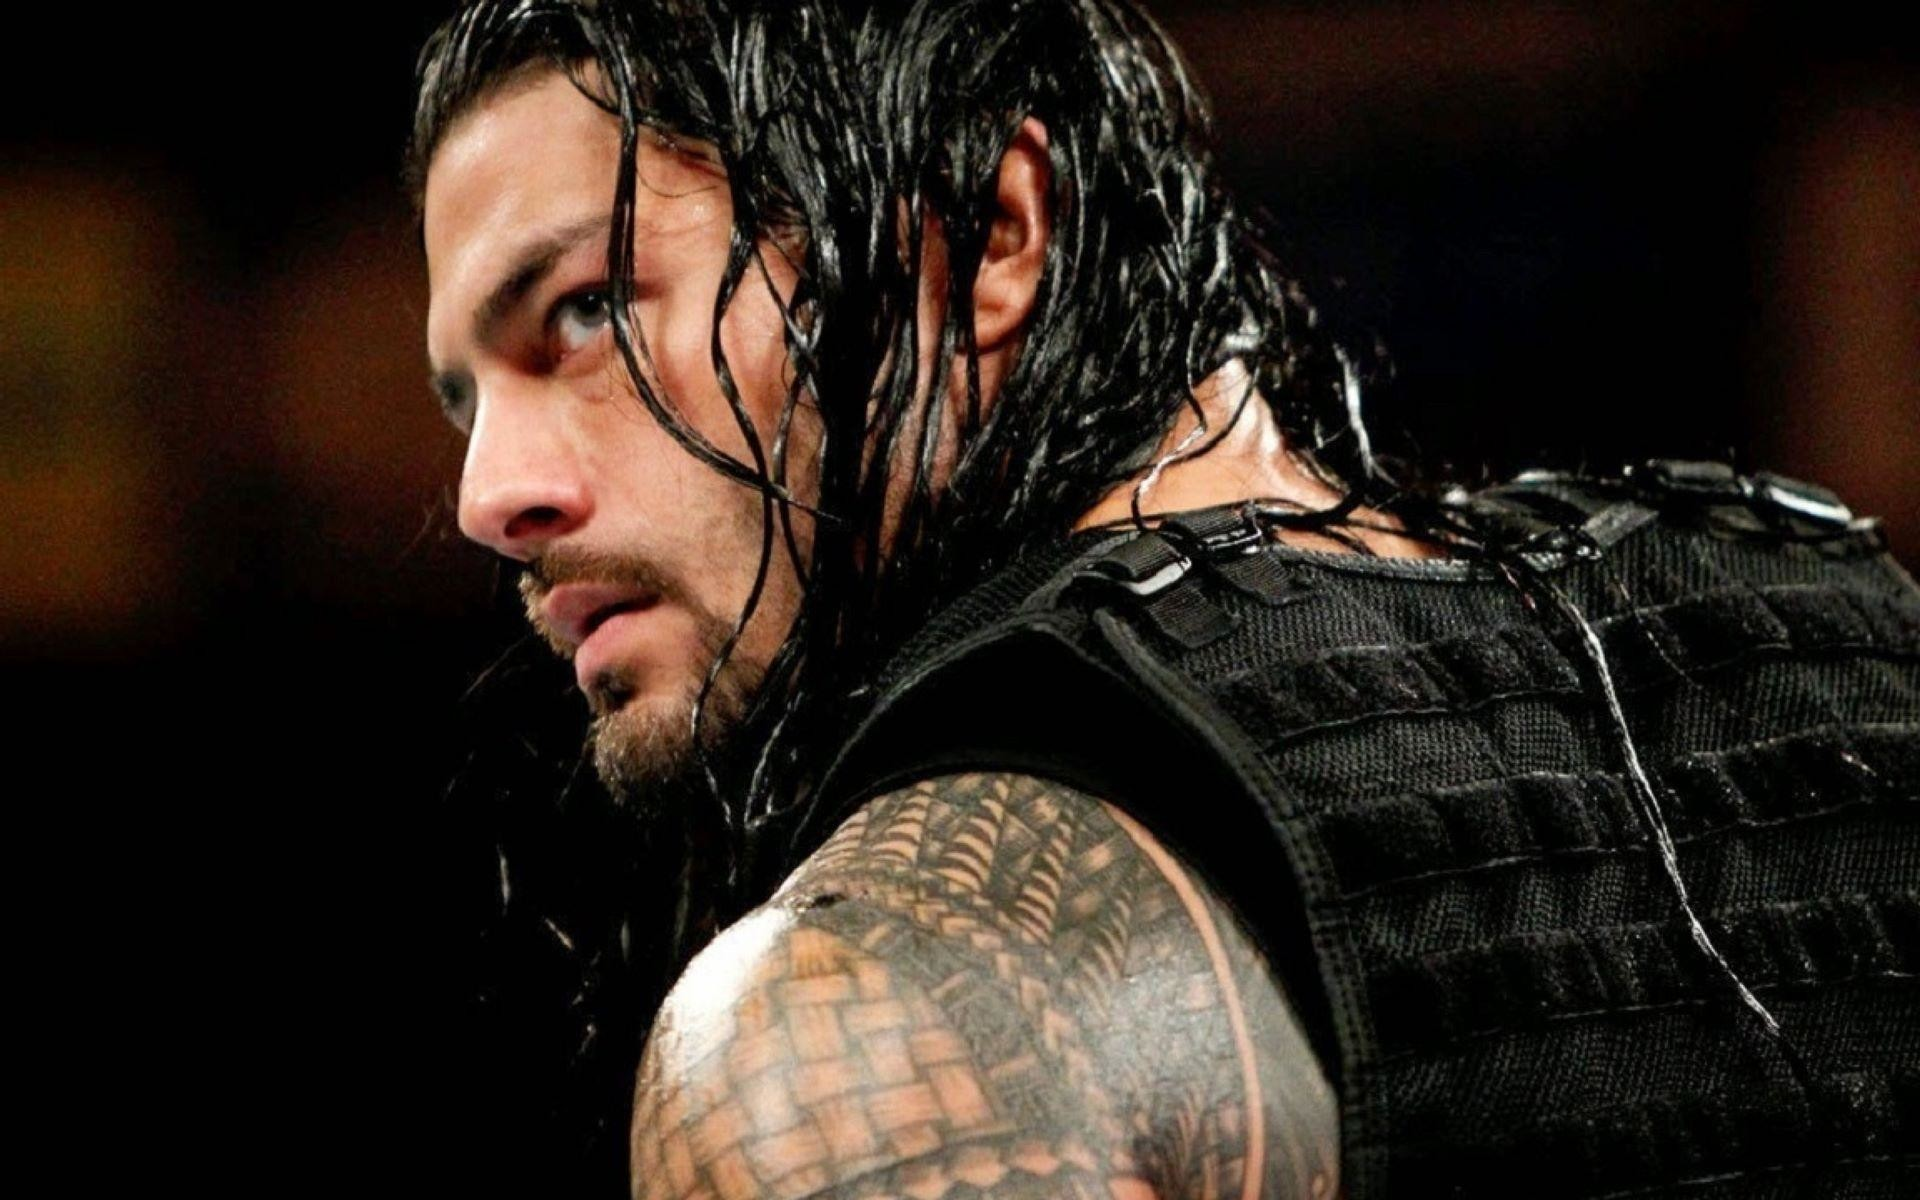 1920x1200 roman reigns hd image hd photo, wallpaper, best photo roman reigns